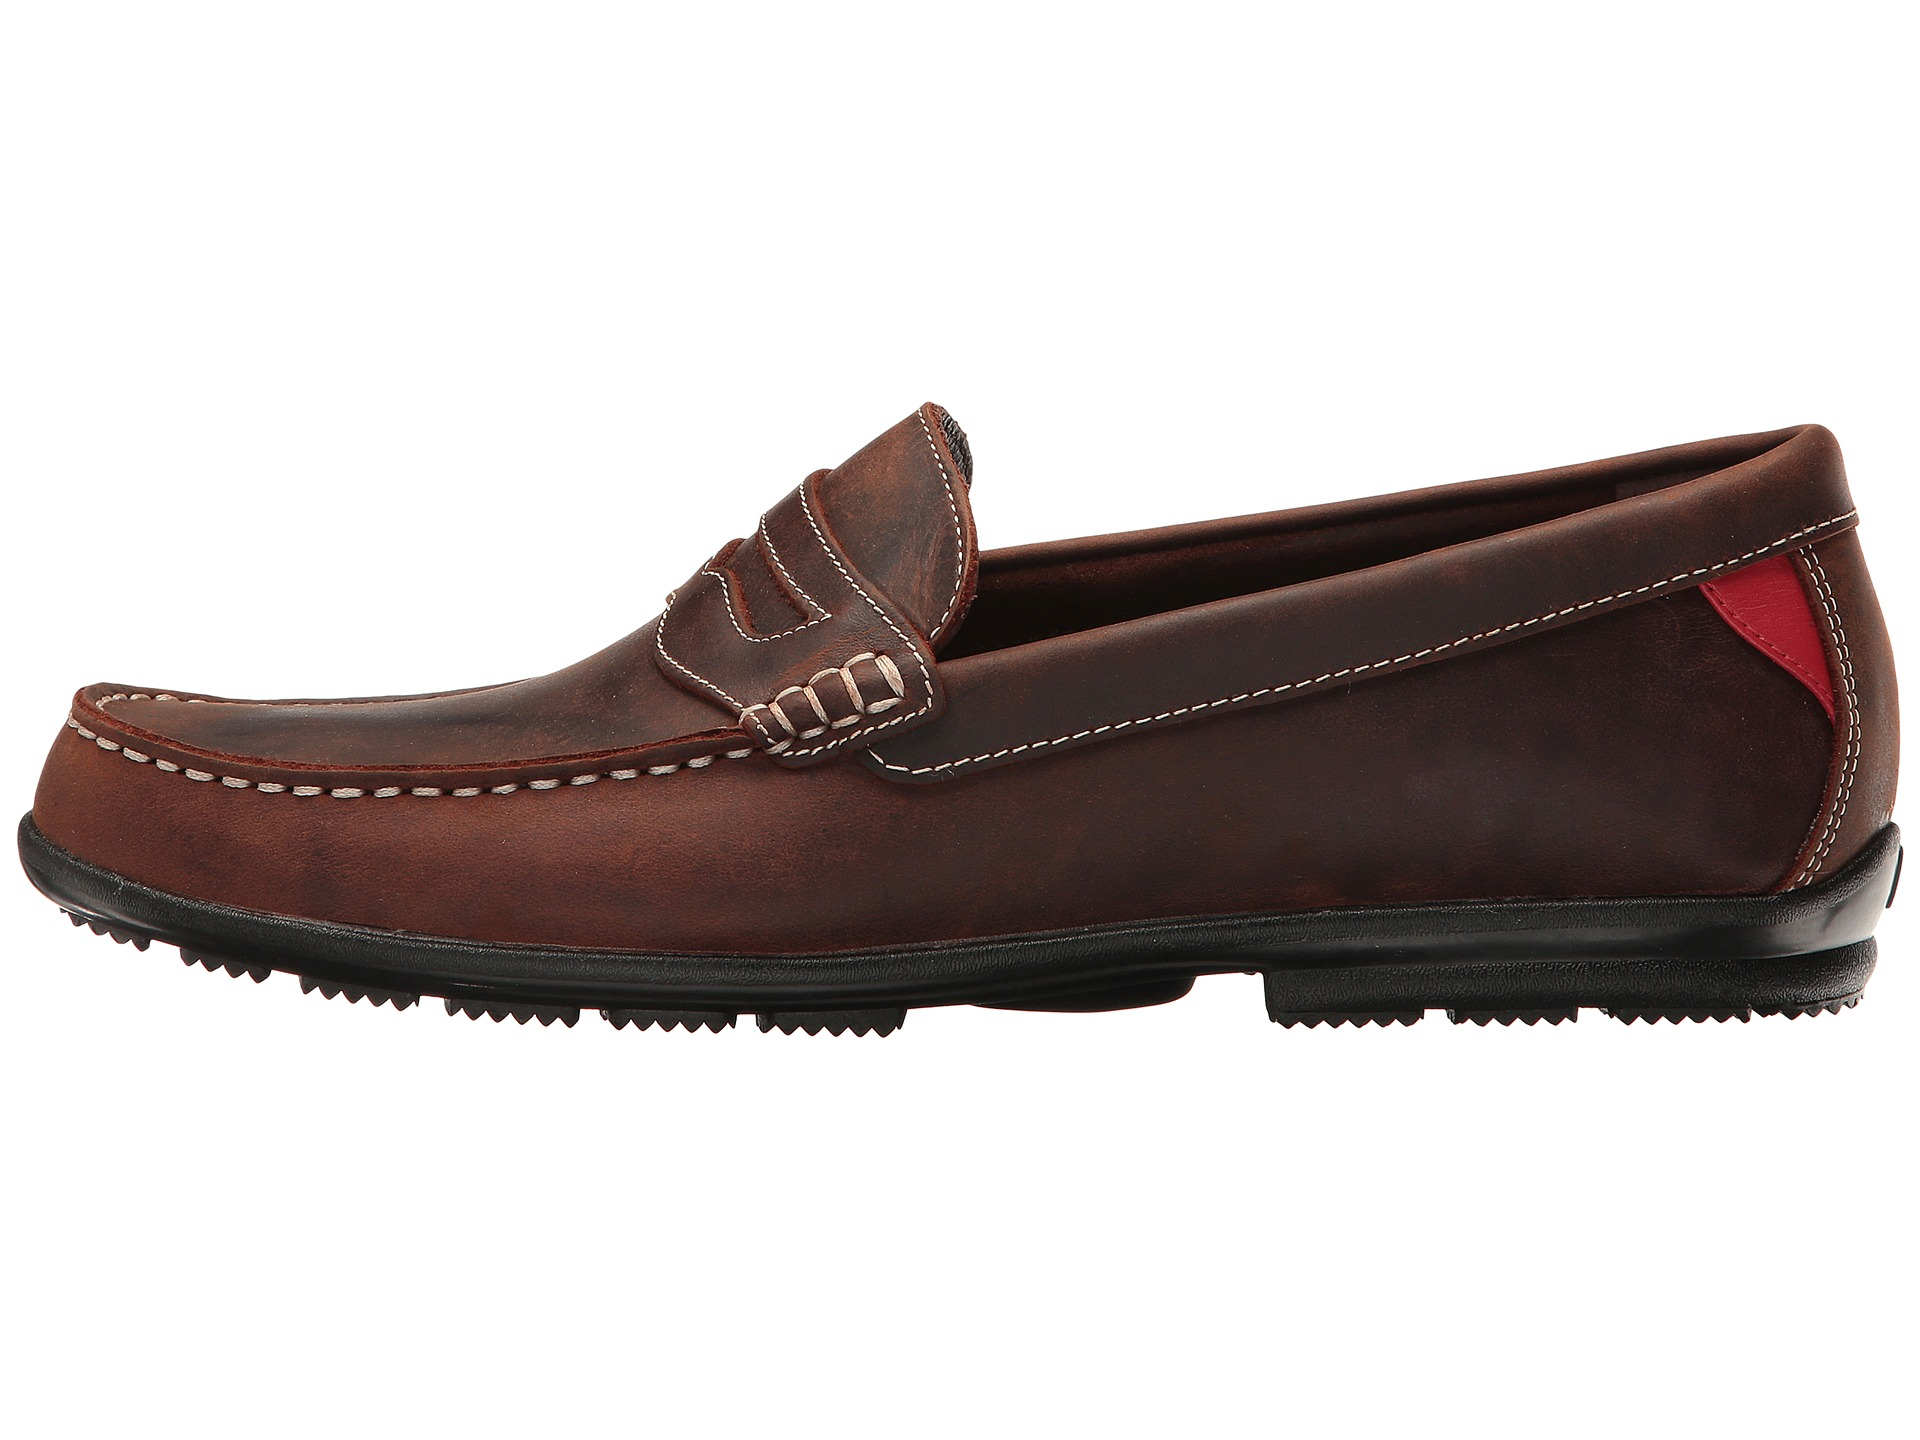 Footjoy Club Casuals Handswen Penny Loafer At Zappos Com